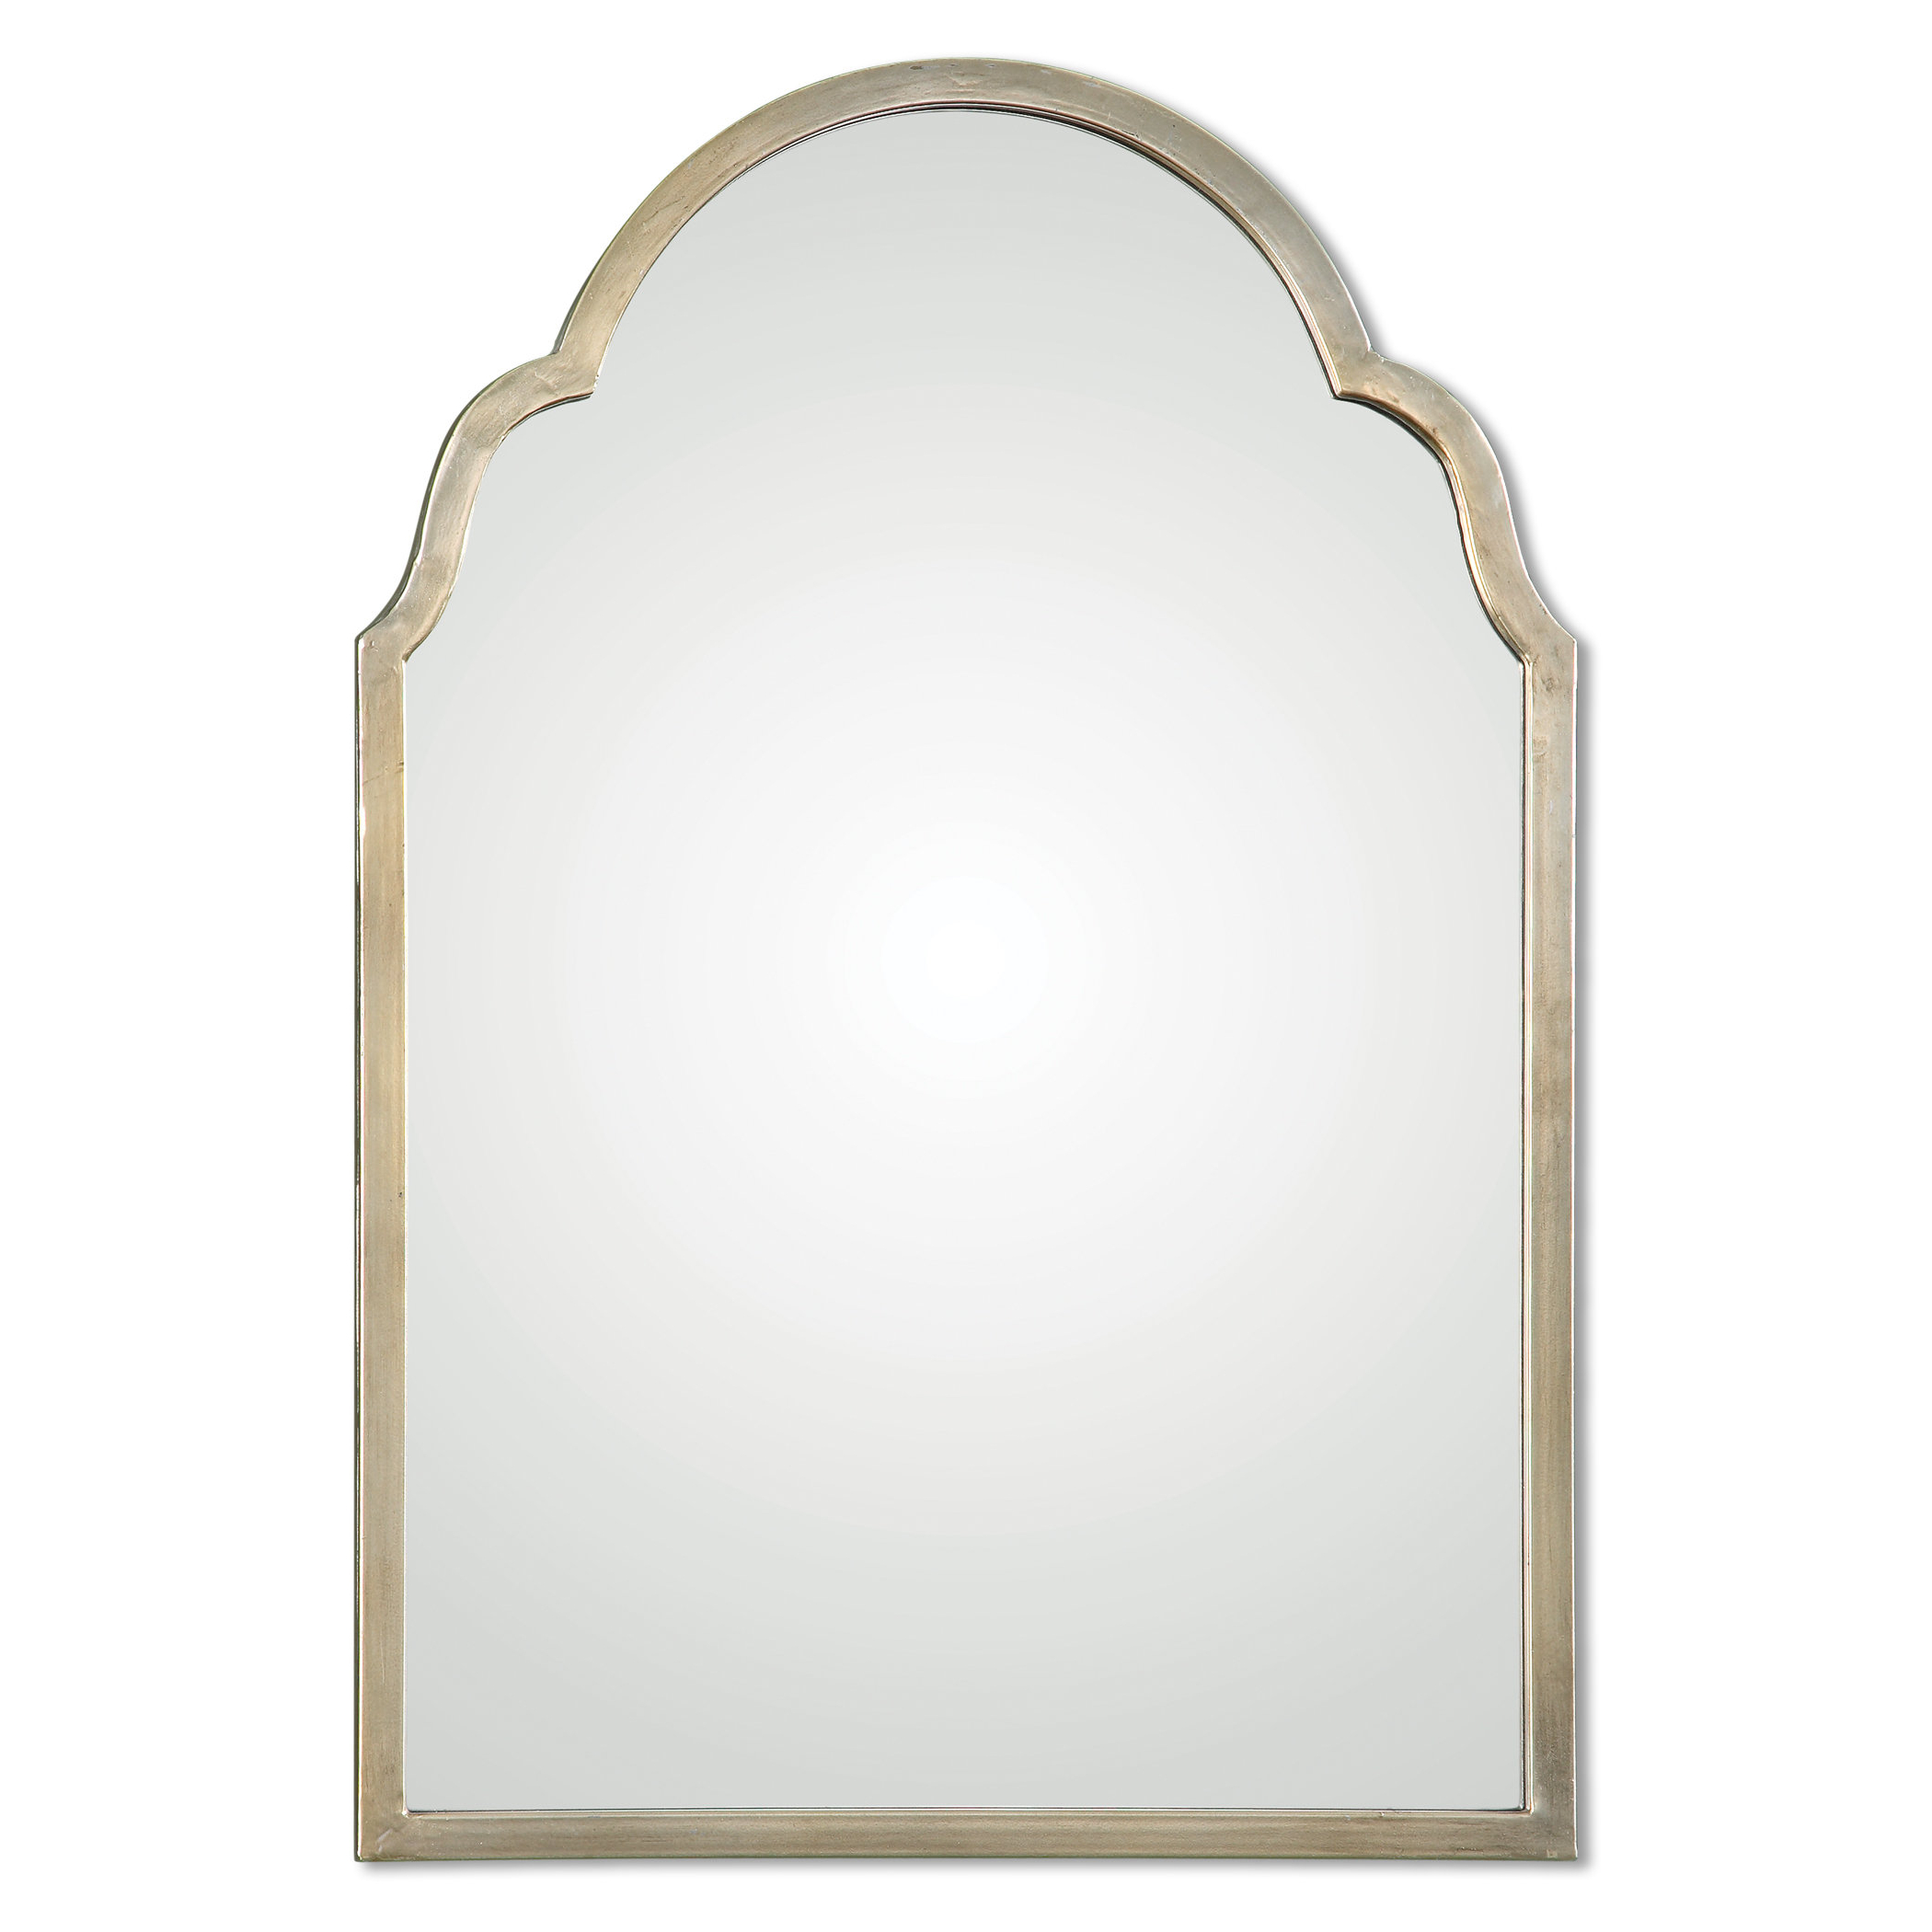 Luise Wall Mounted Rectangle Accent Mirror Design T In Current Moseley Accent Mirrors (Gallery 13 of 20)